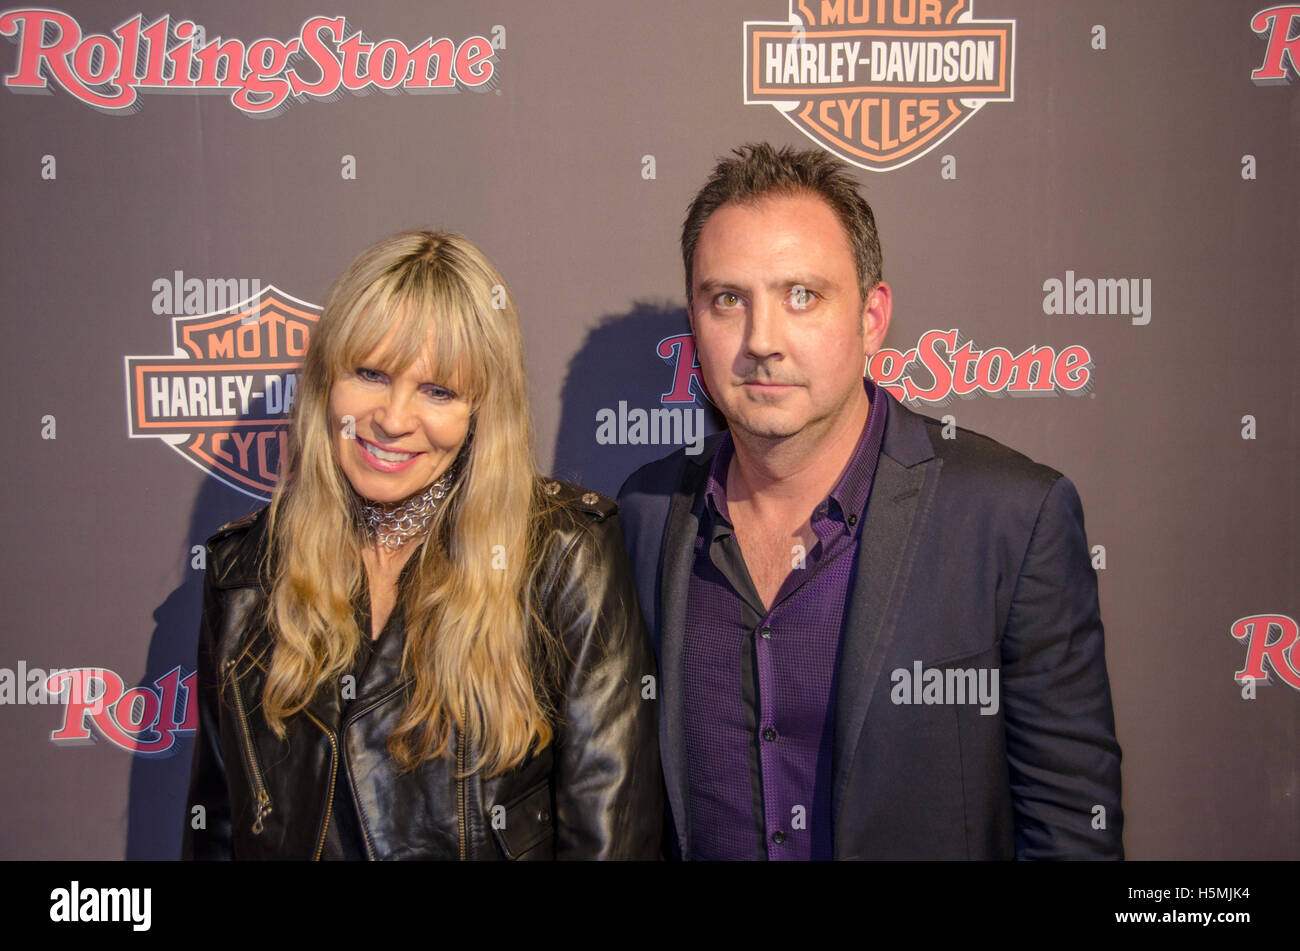 Karen Davidson and Michael Provus attend Harley-Davidson and Rolling